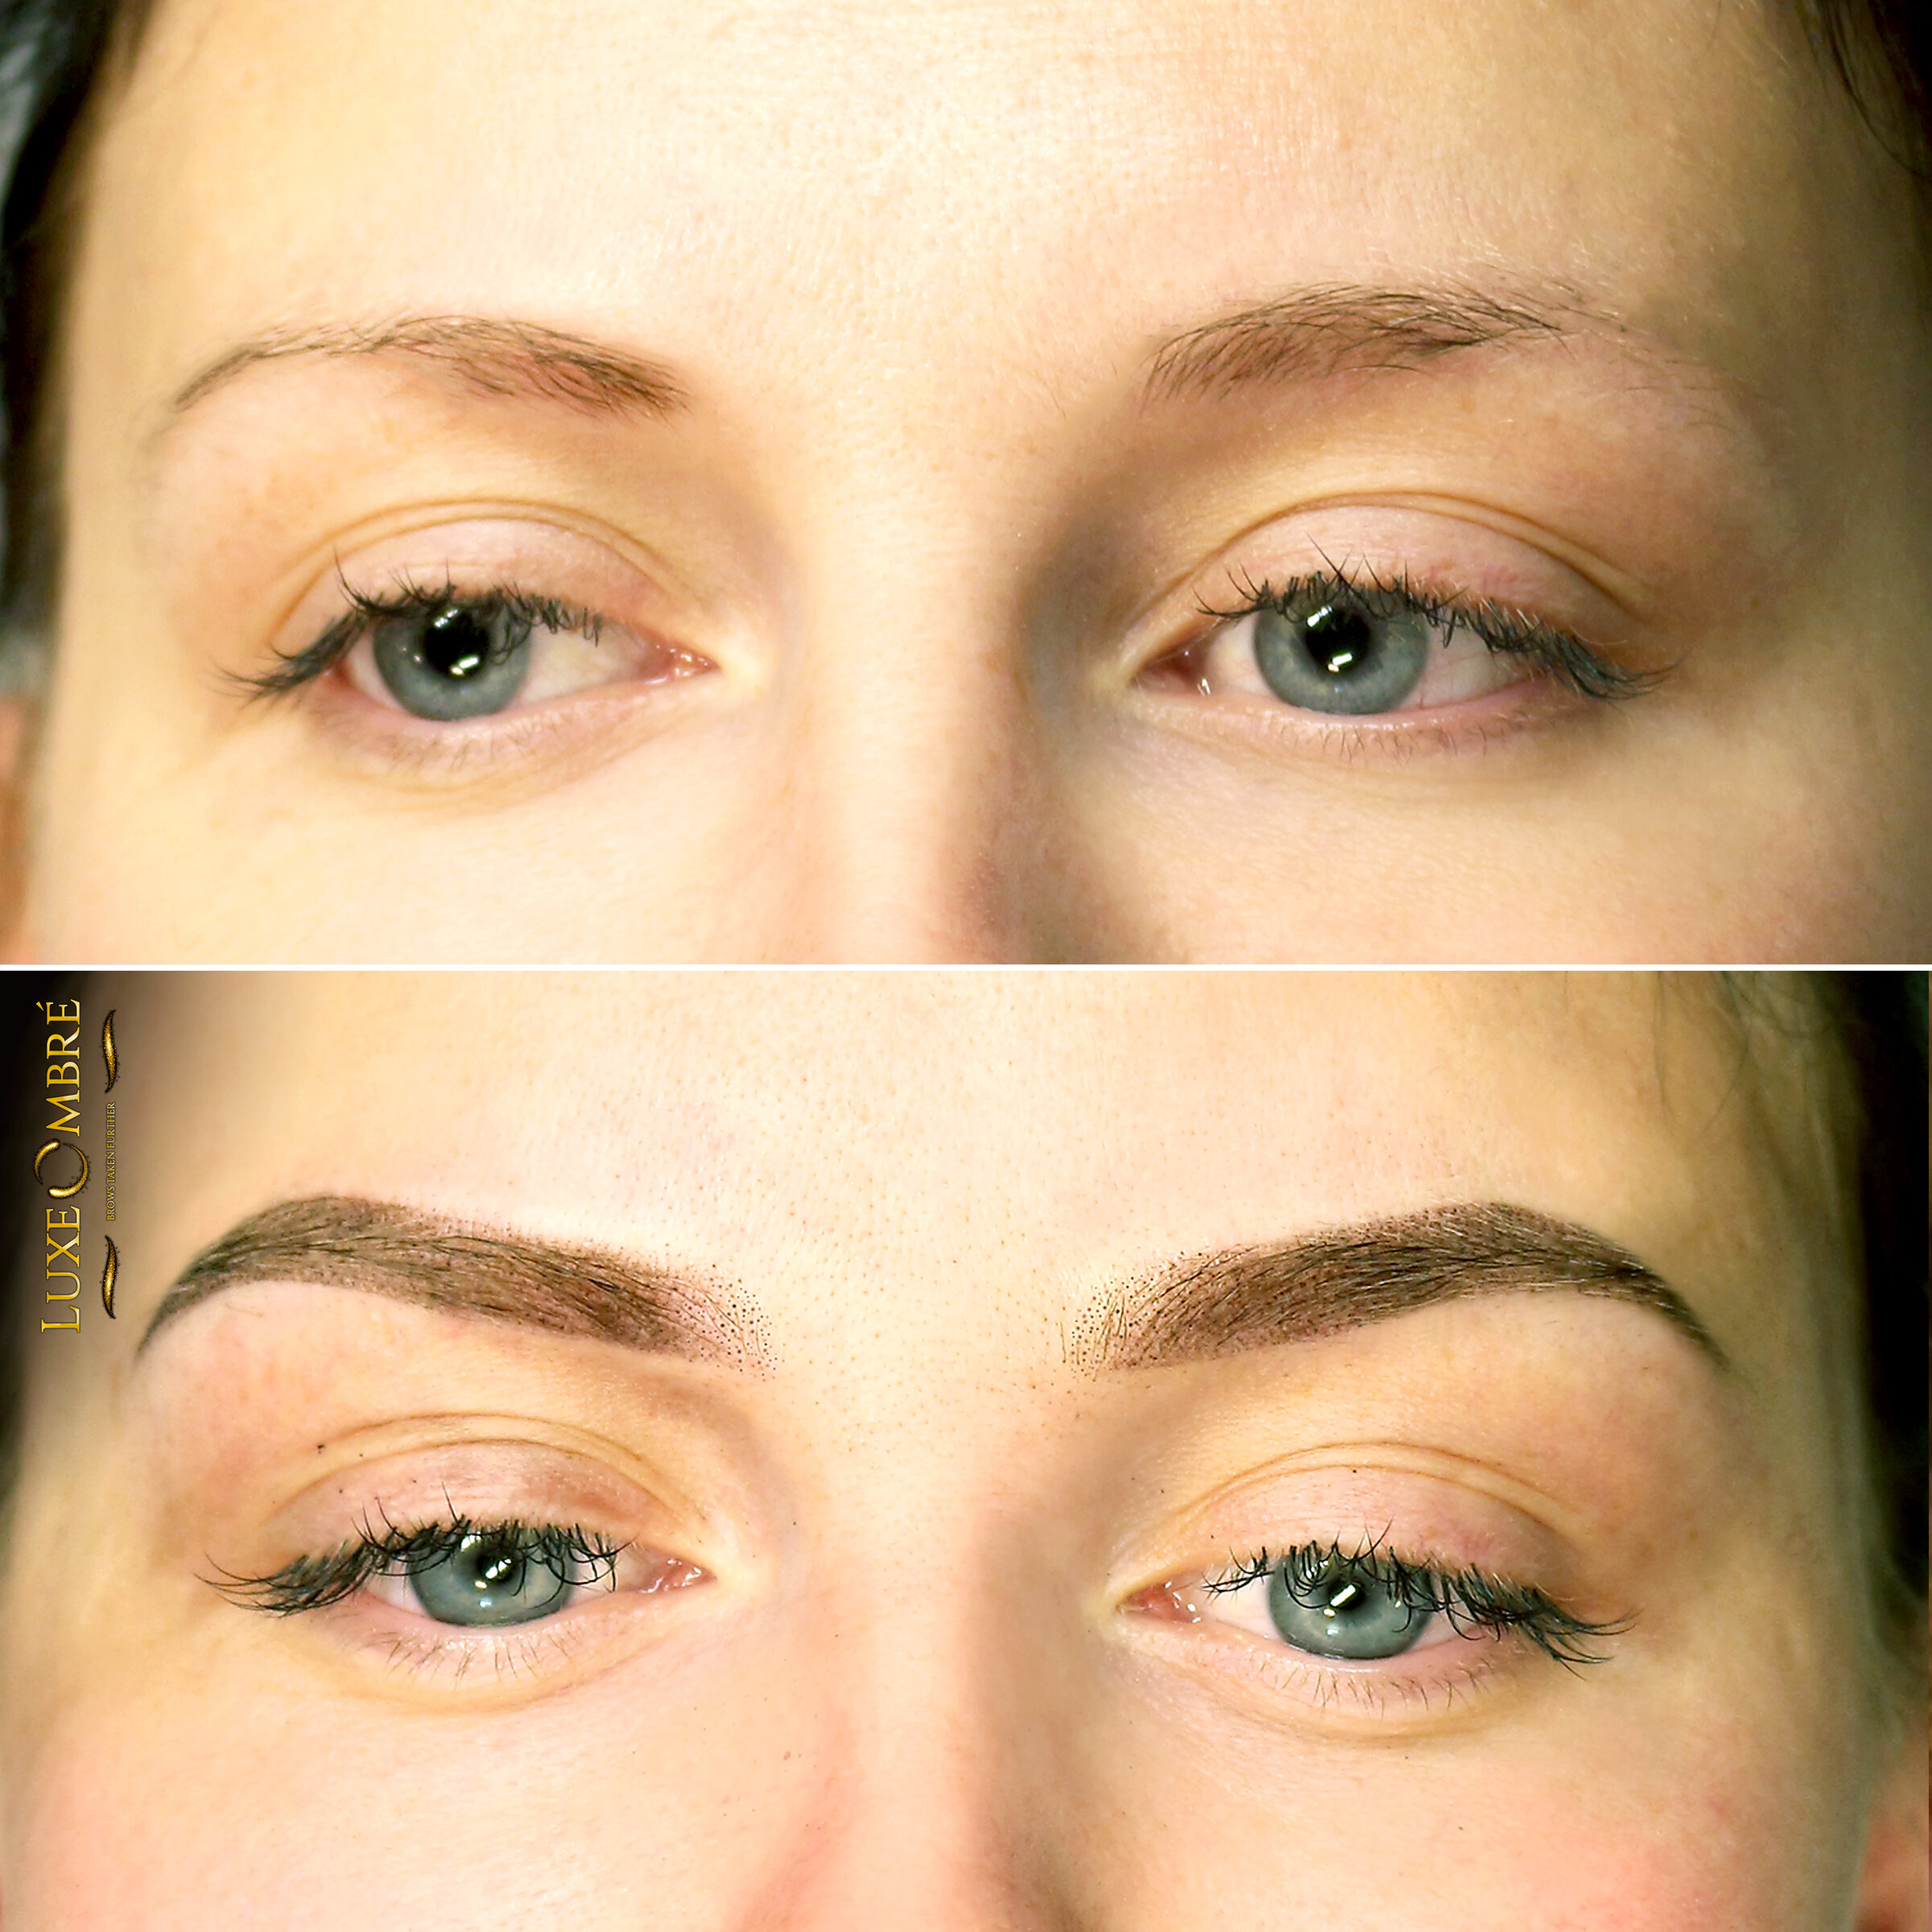 Supreme change when it comes to brow size and shape.